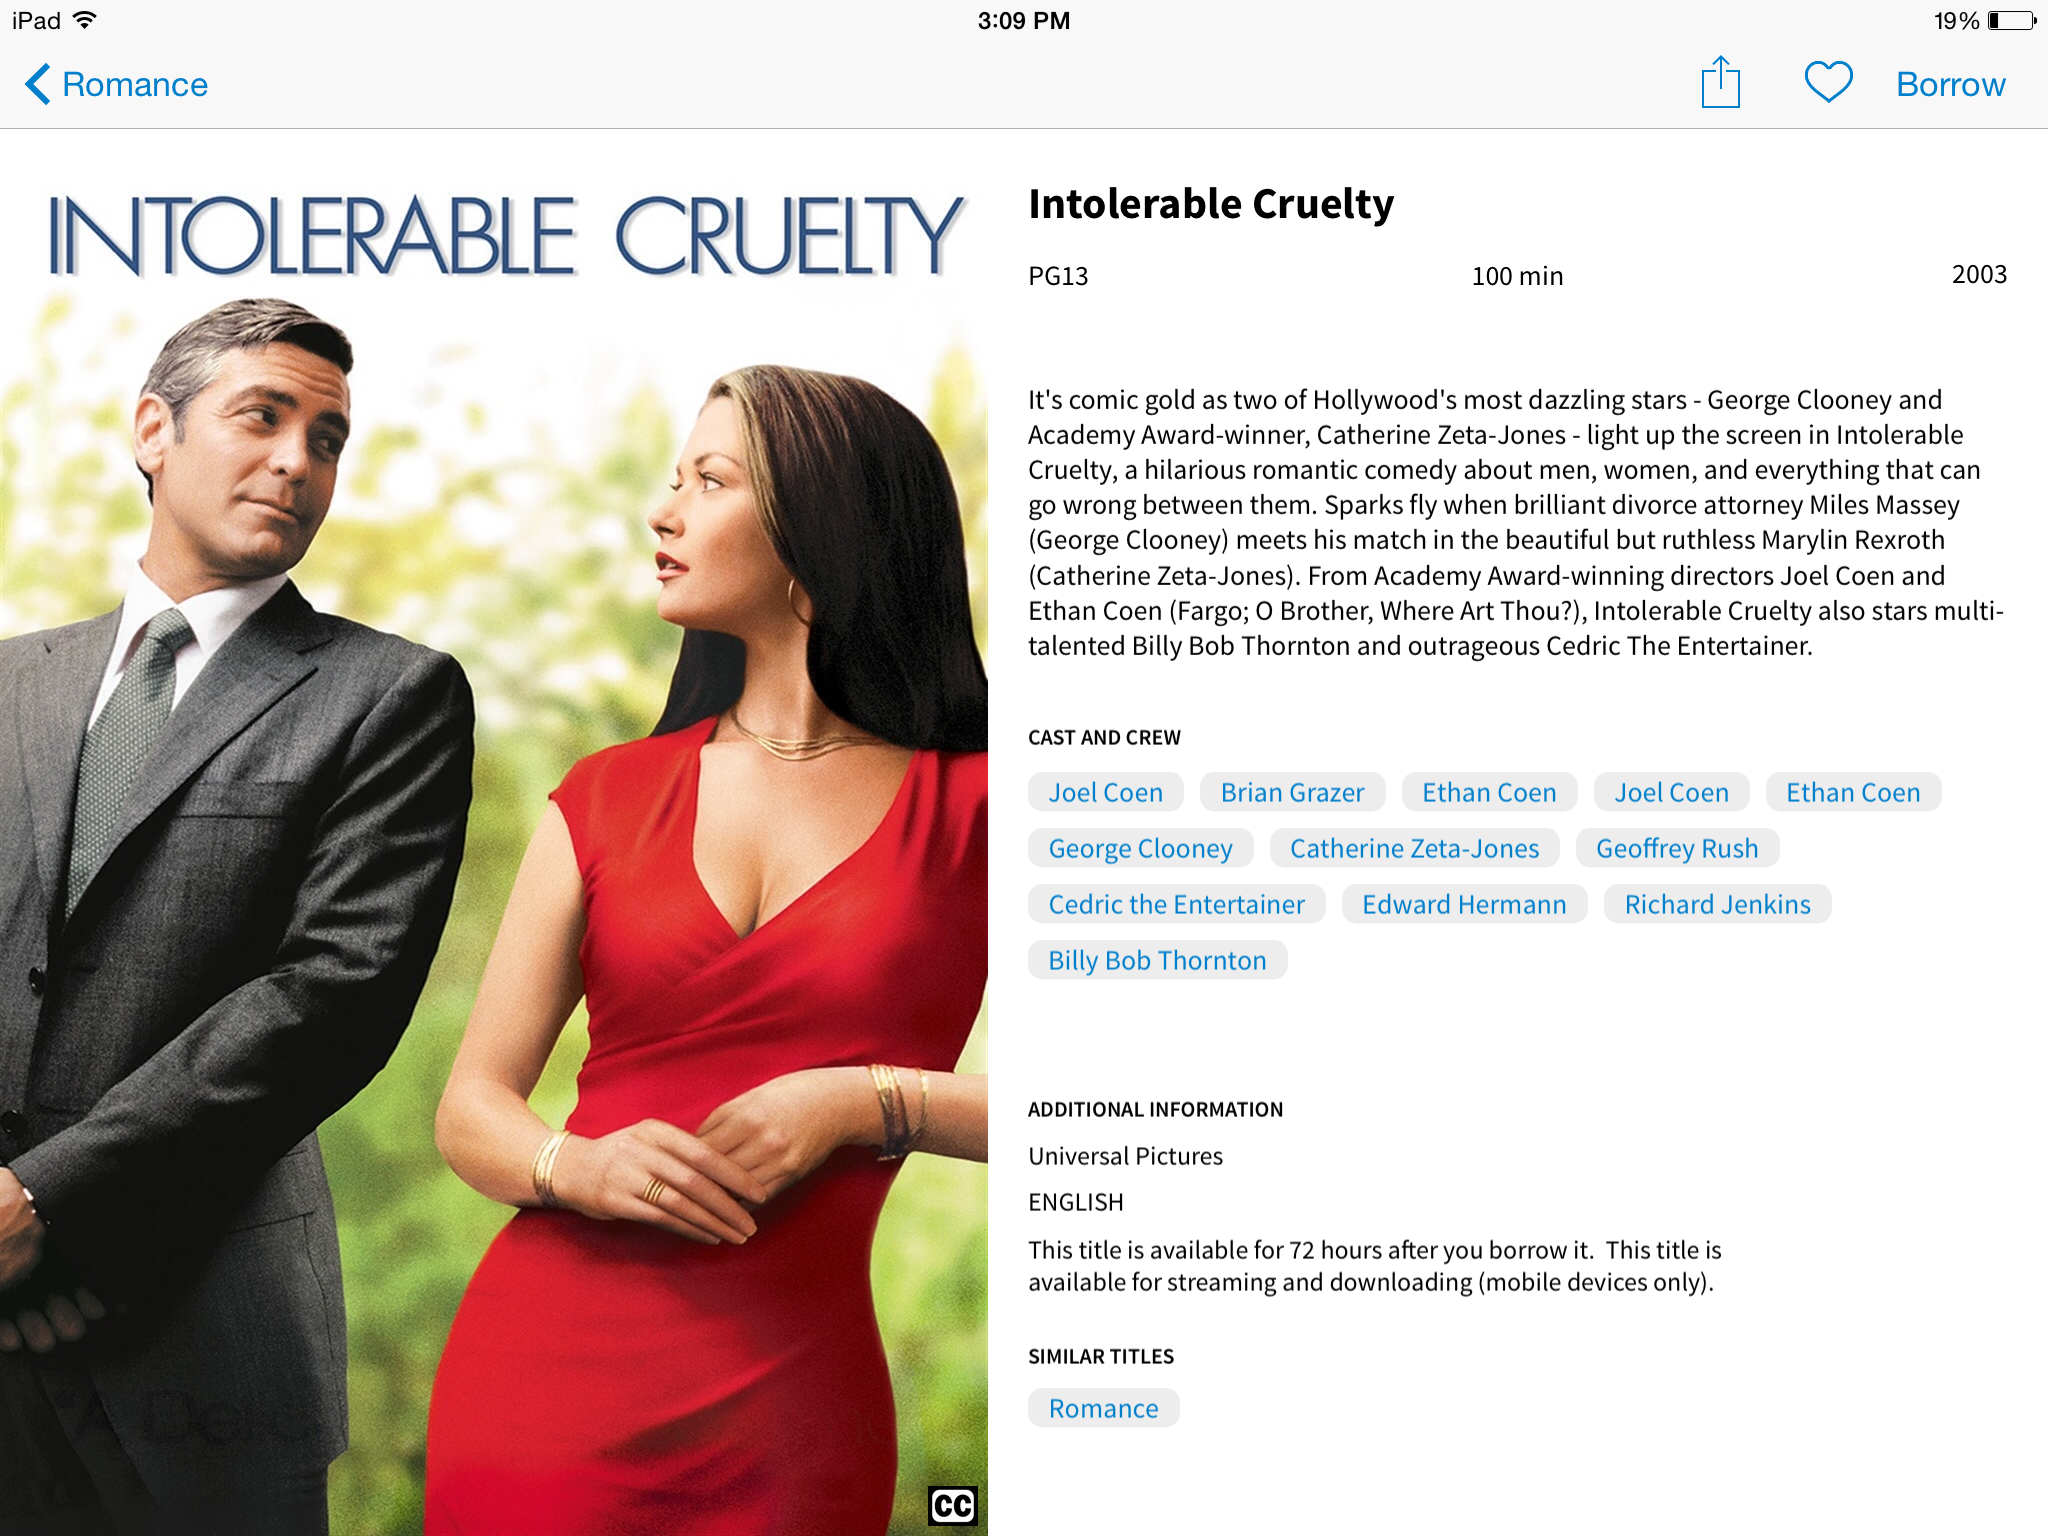 Intolerable Cruelty, as seen on hoopla LightSpeed.